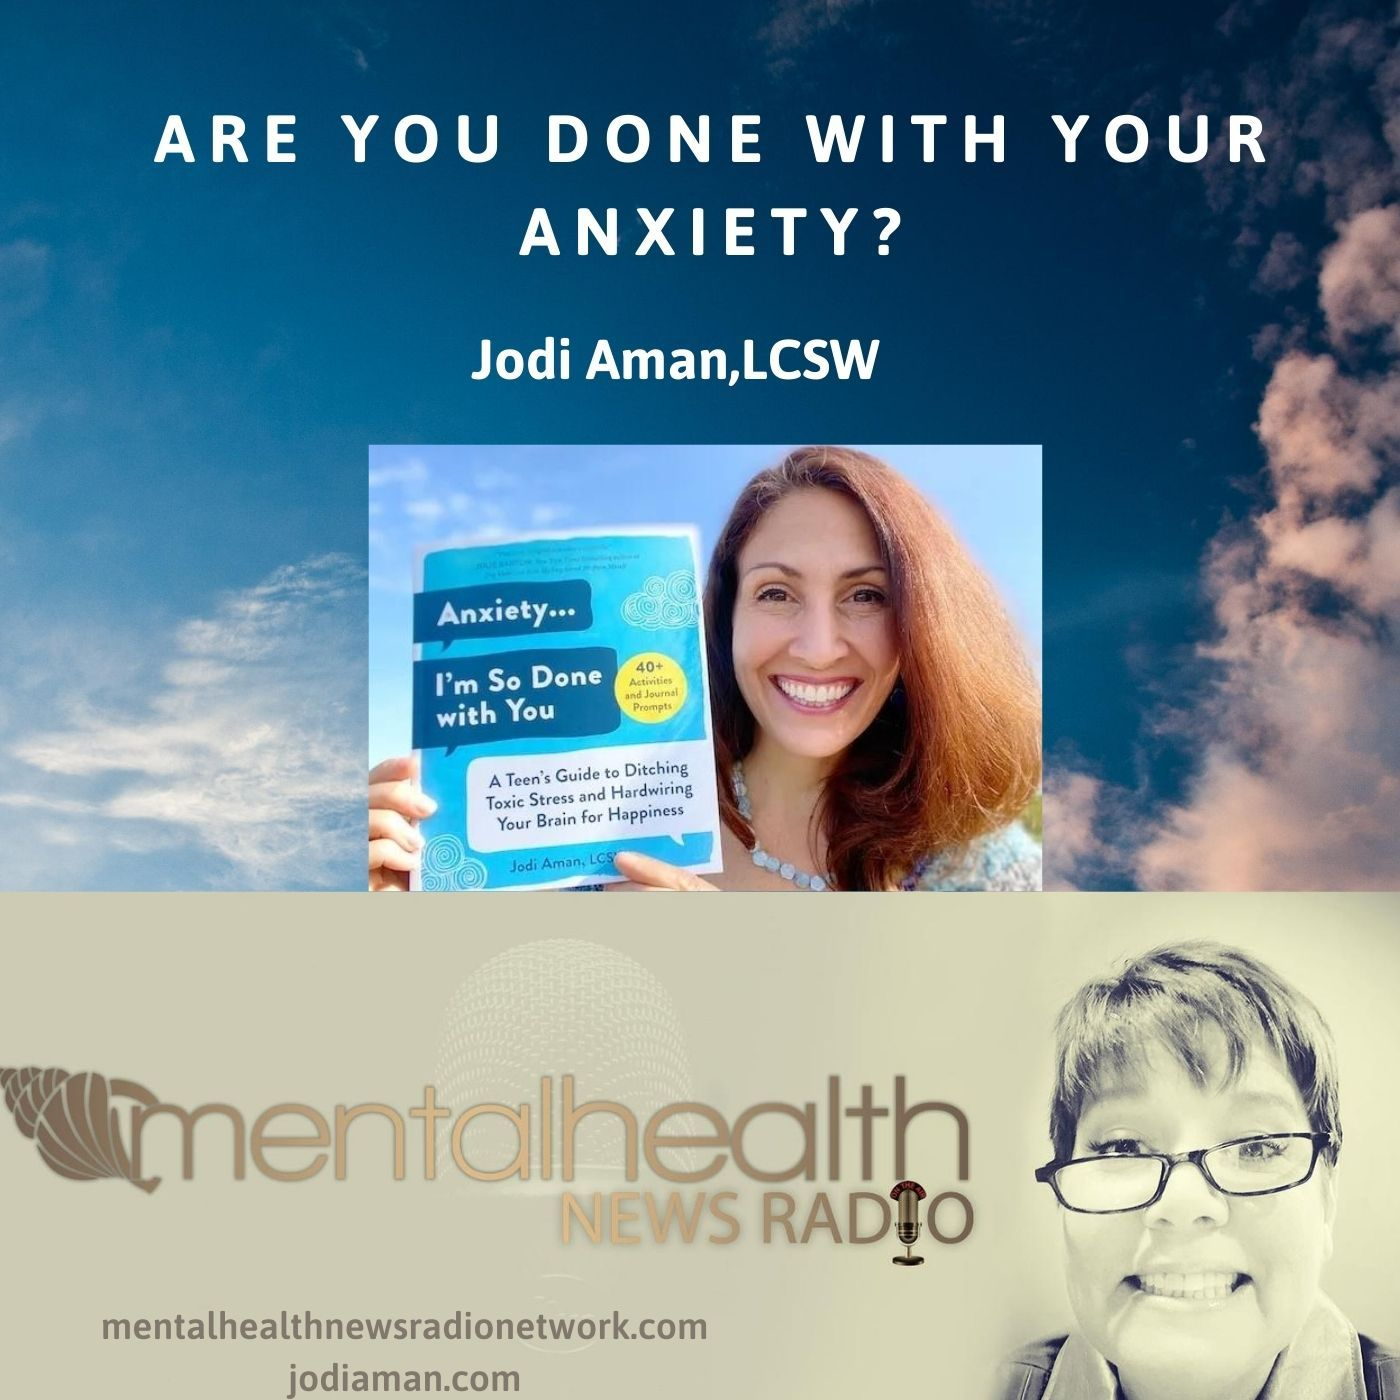 Mental Health News Radio - Are You Done with Your Anxiety?